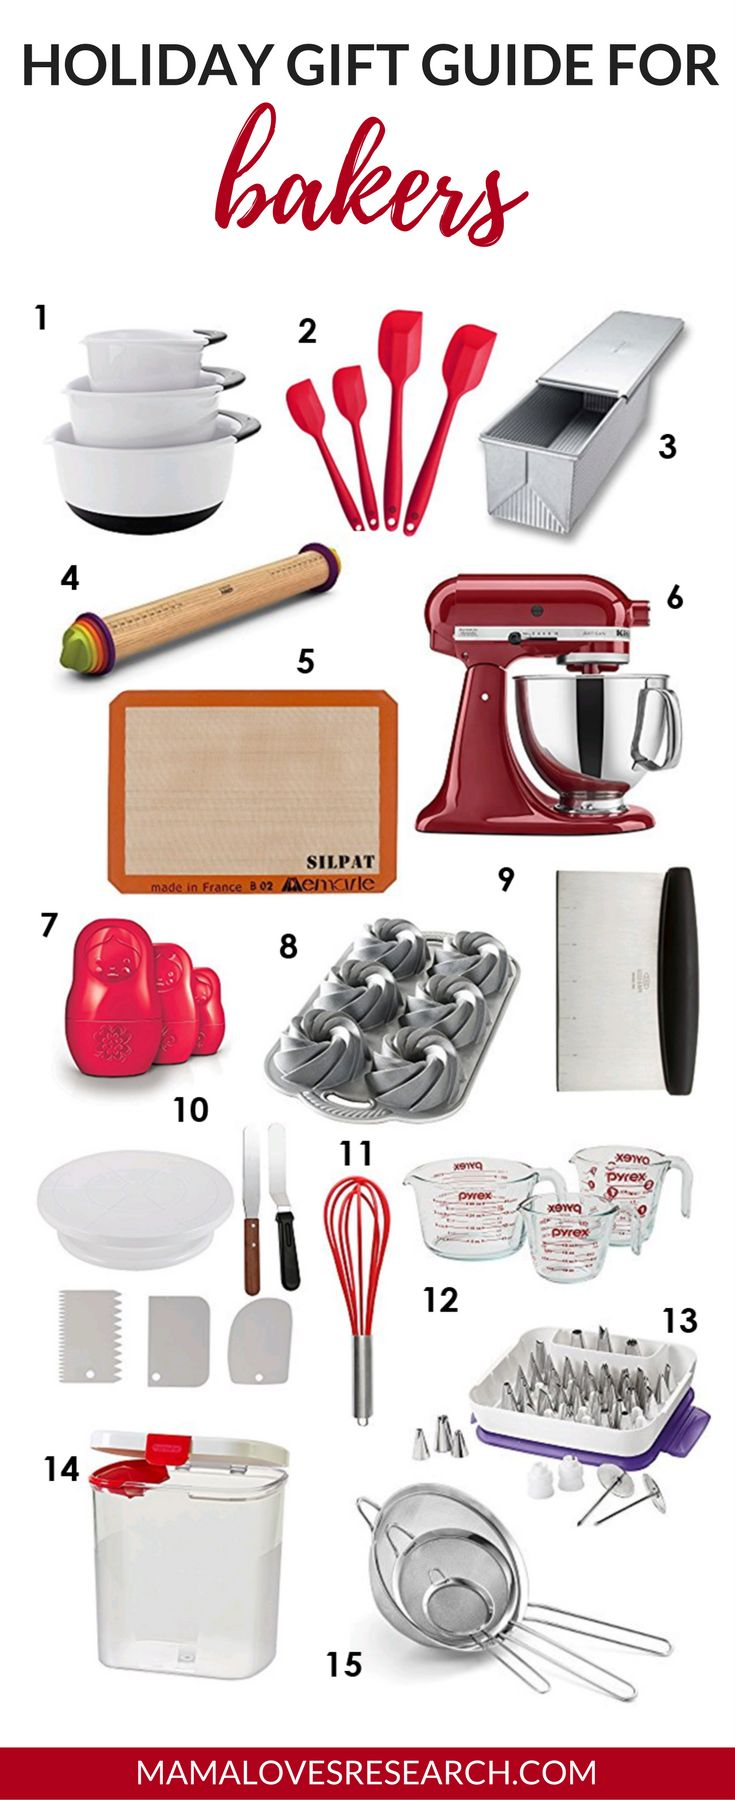 Holiday Gift Guide for Bakers - Mama Loves Research